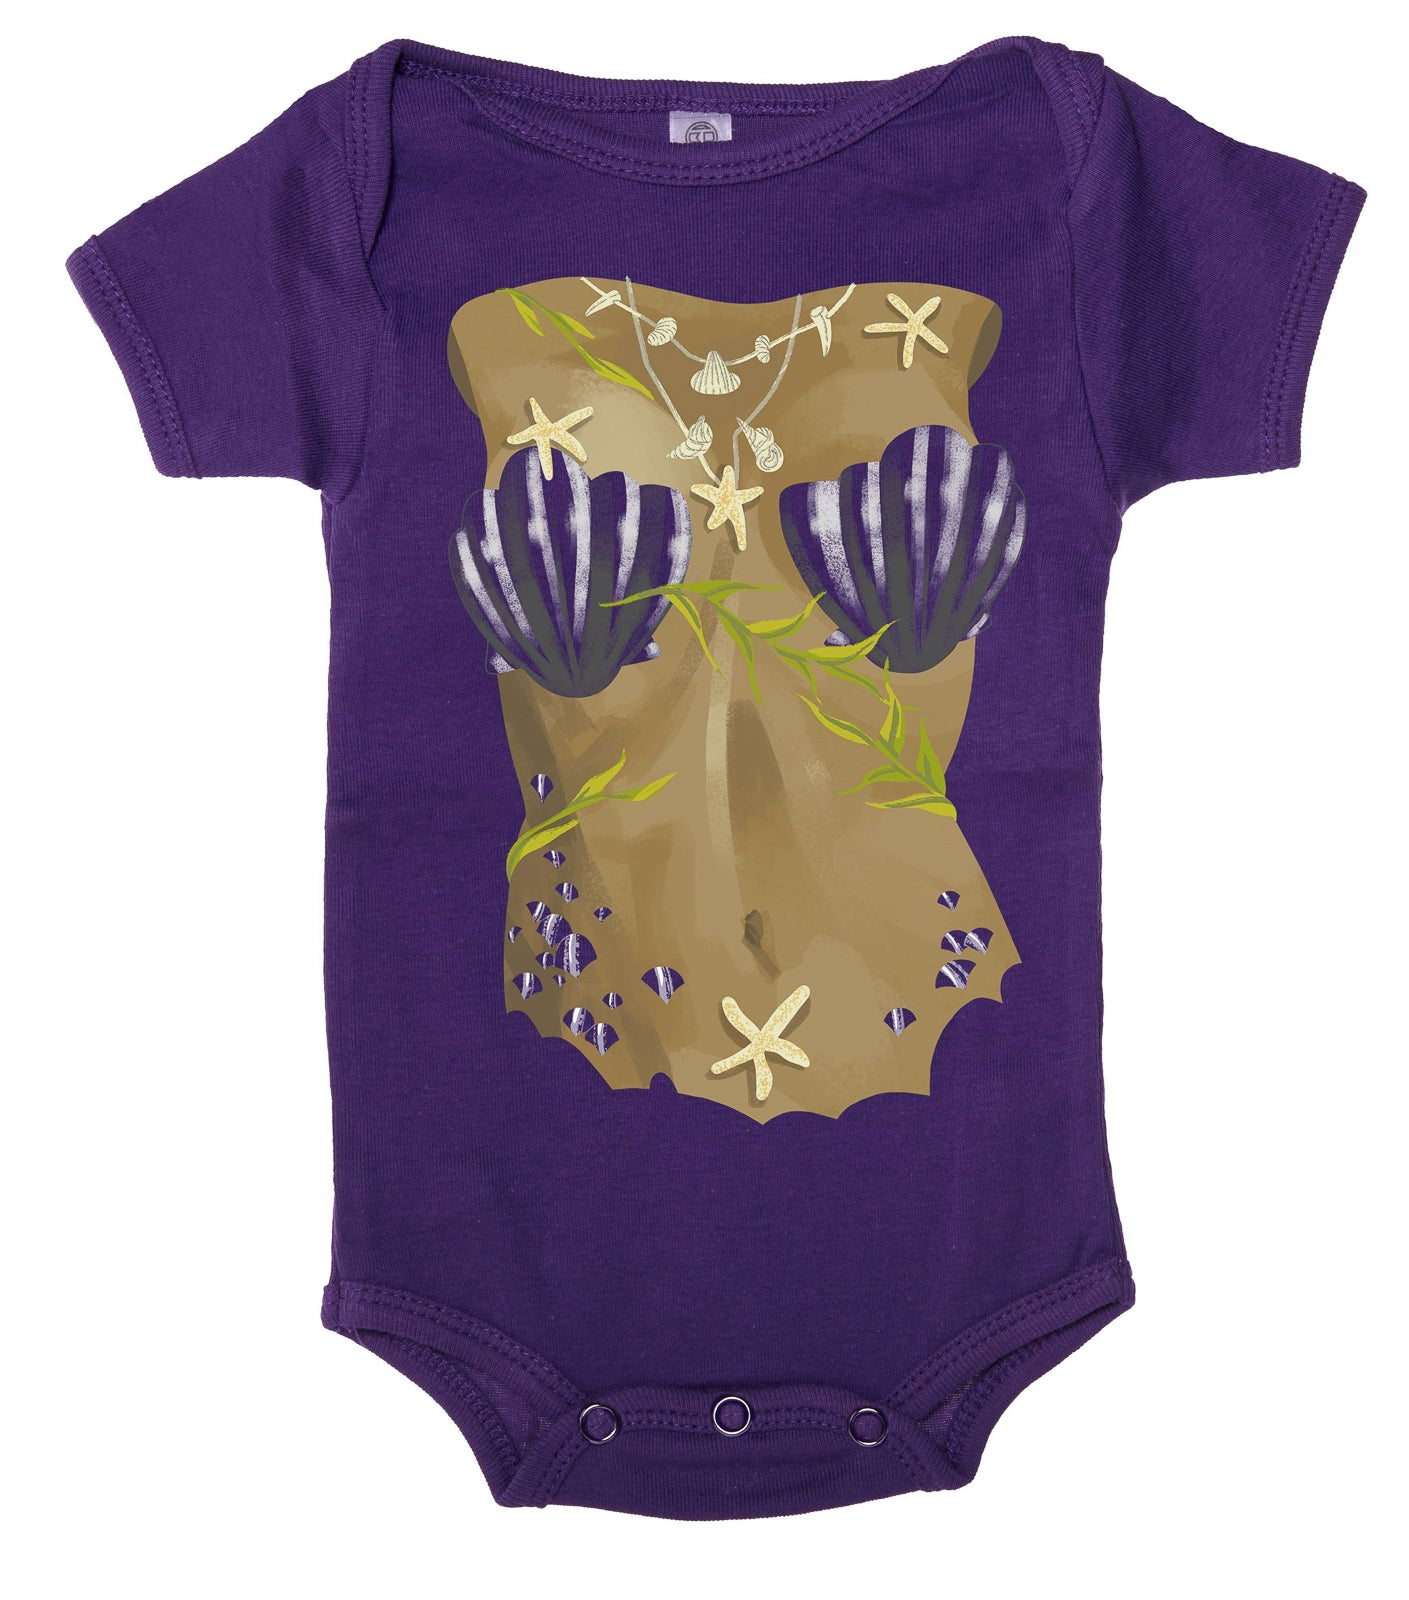 Shirt - Mermaid Costume Cute Baby Romper, Halloween Short Sleeve Baby One Piece!